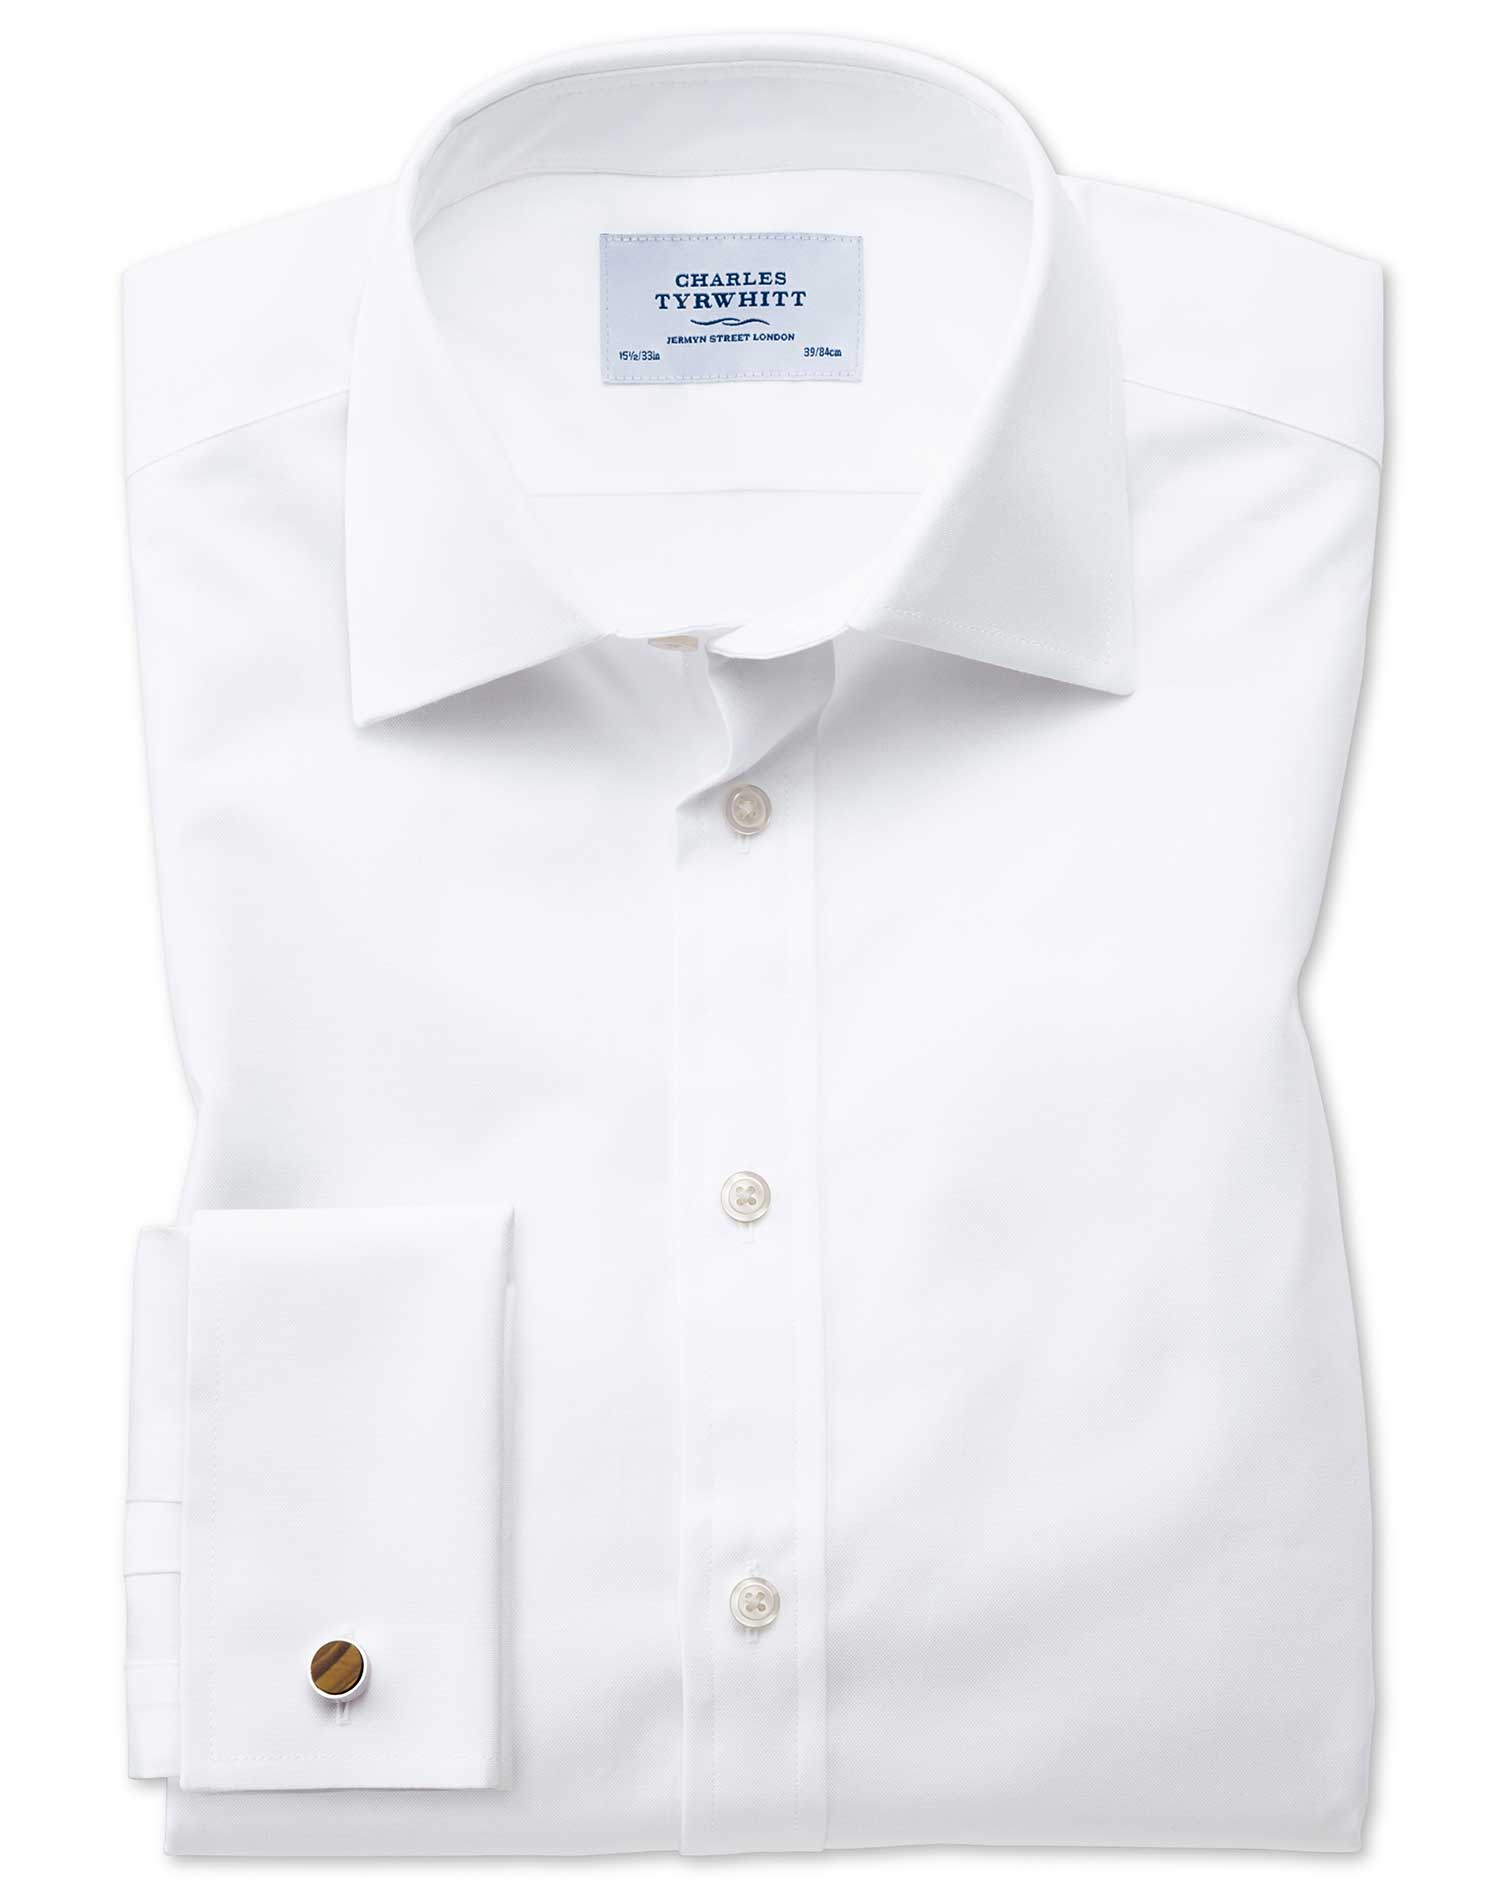 Extra Slim Fit Oxford White Cotton Formal Shirt Double Cuff Size 17/37 by Charles Tyrwhitt